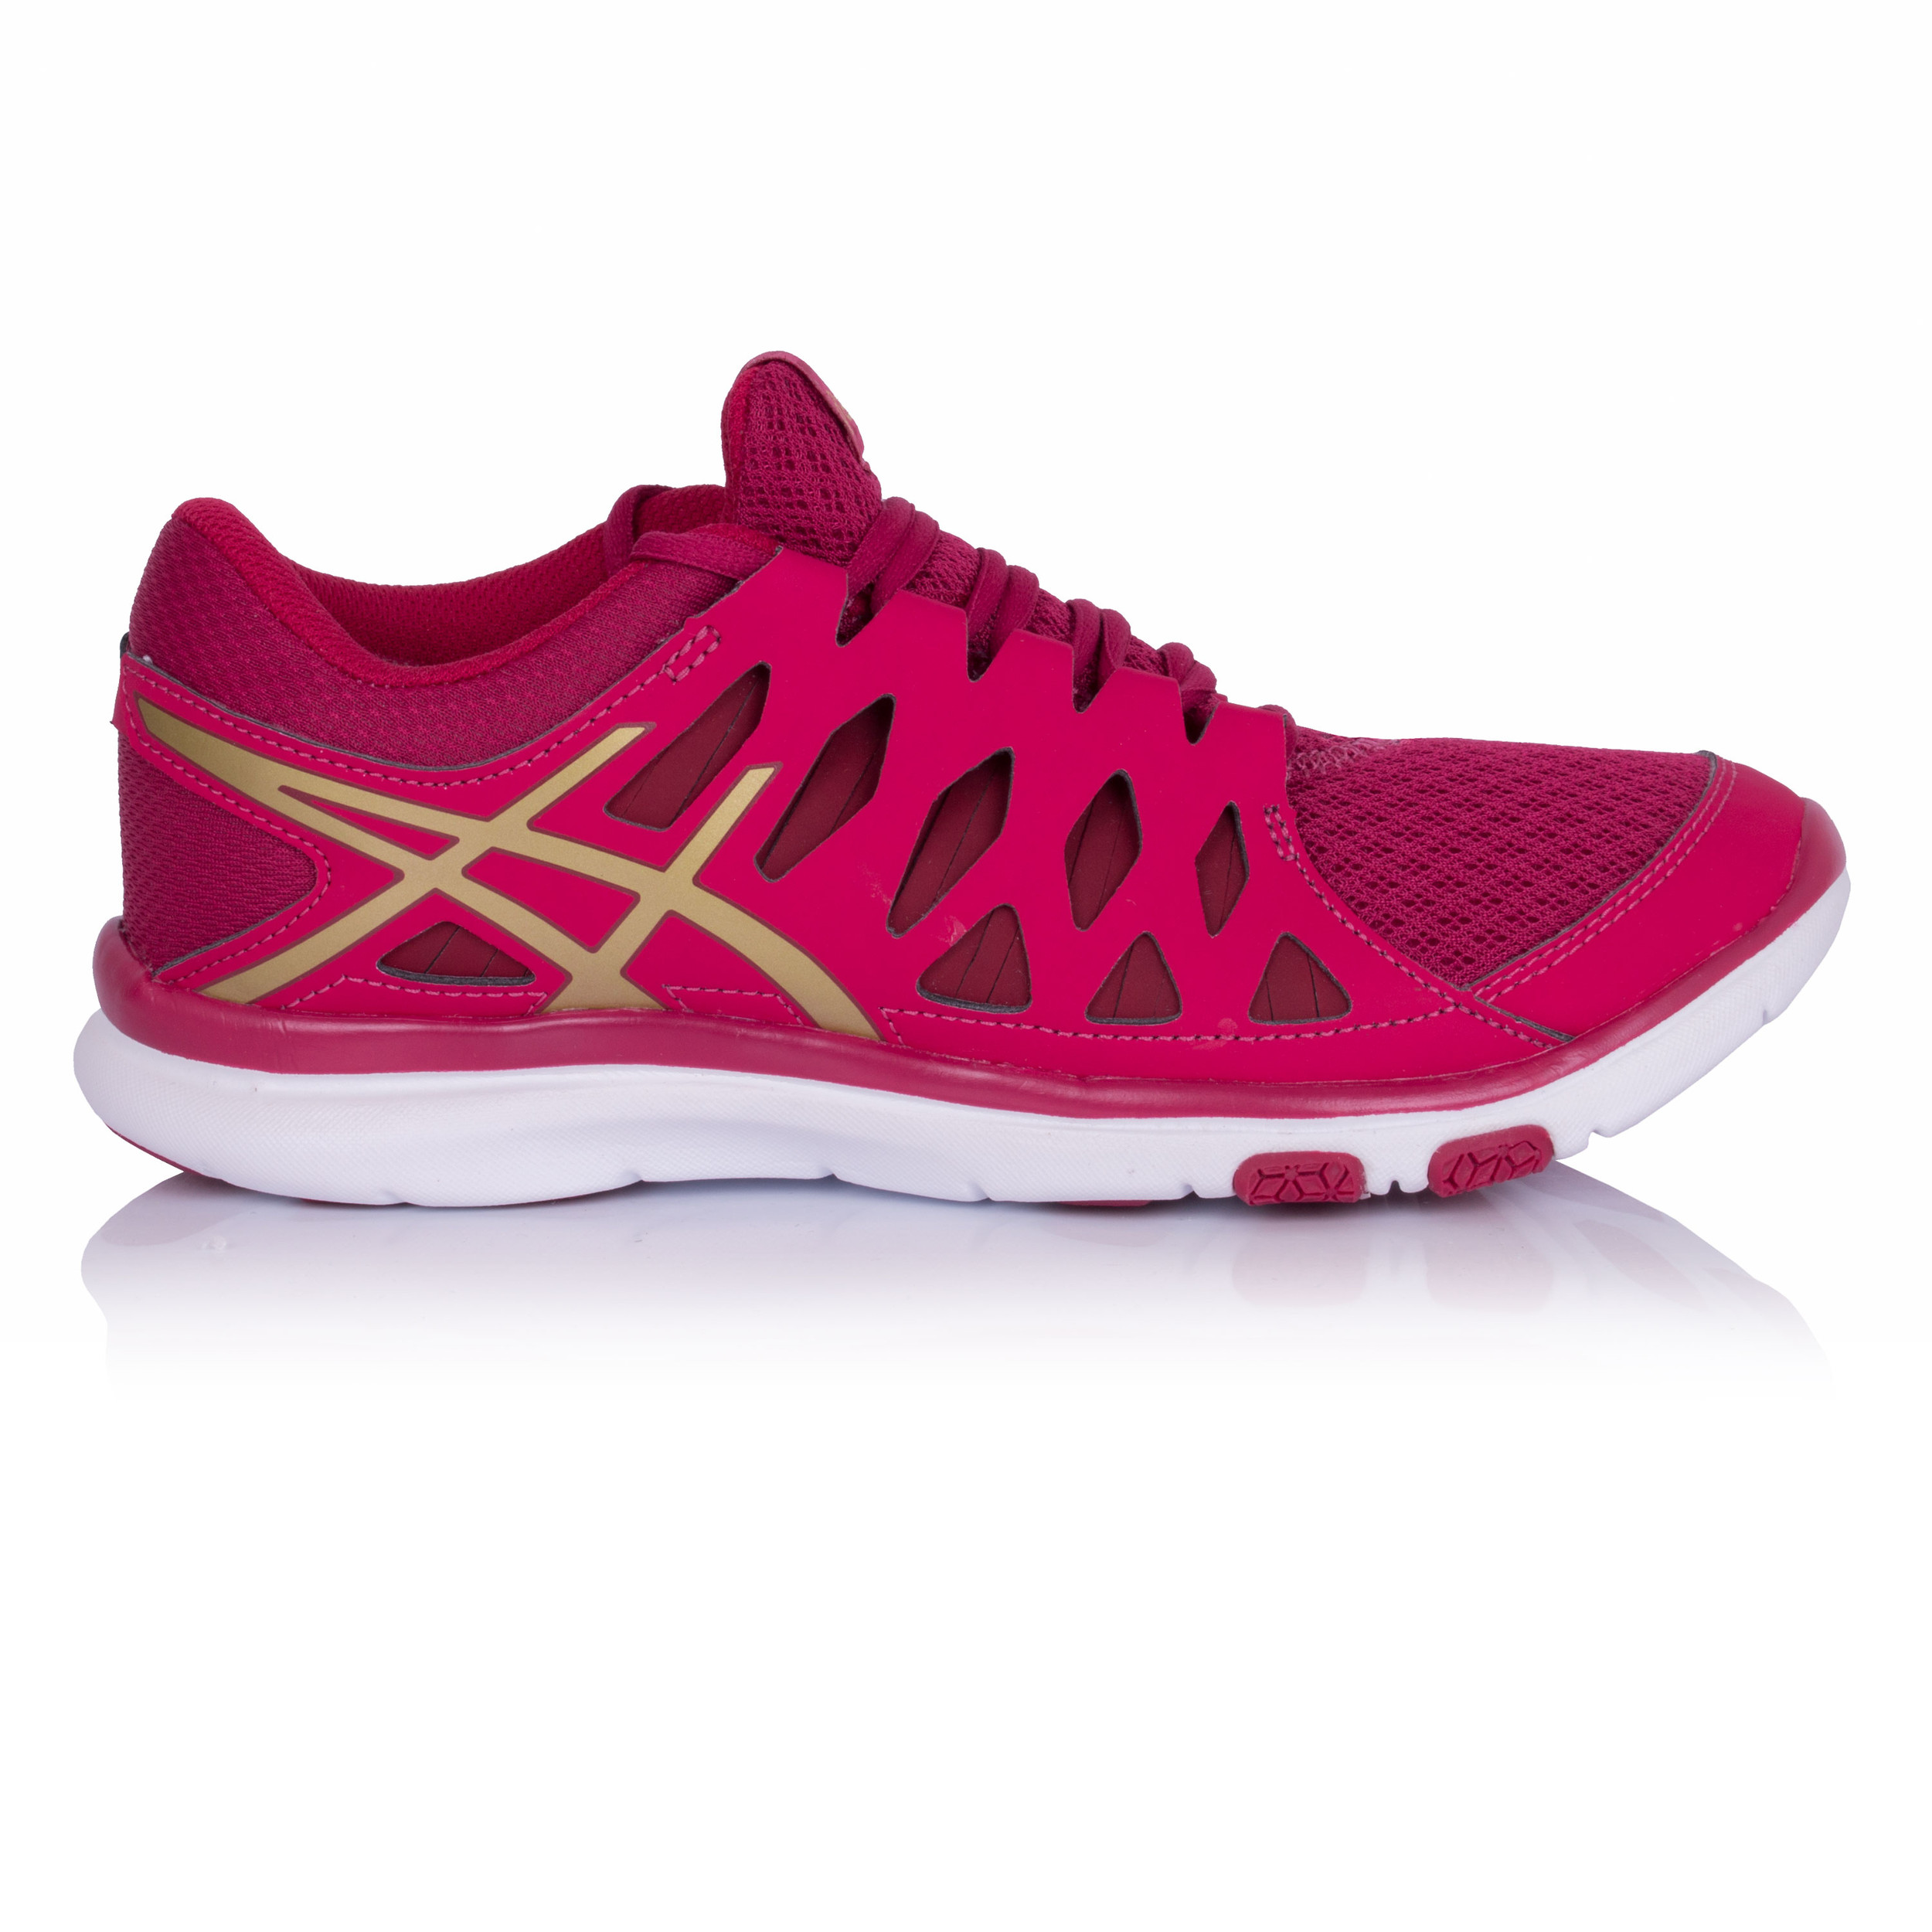 cfade24dbe68 Details about Asics Gel Fit Tempo 2 Womens Red Cross Training Sports Shoes  Trainers Pumps